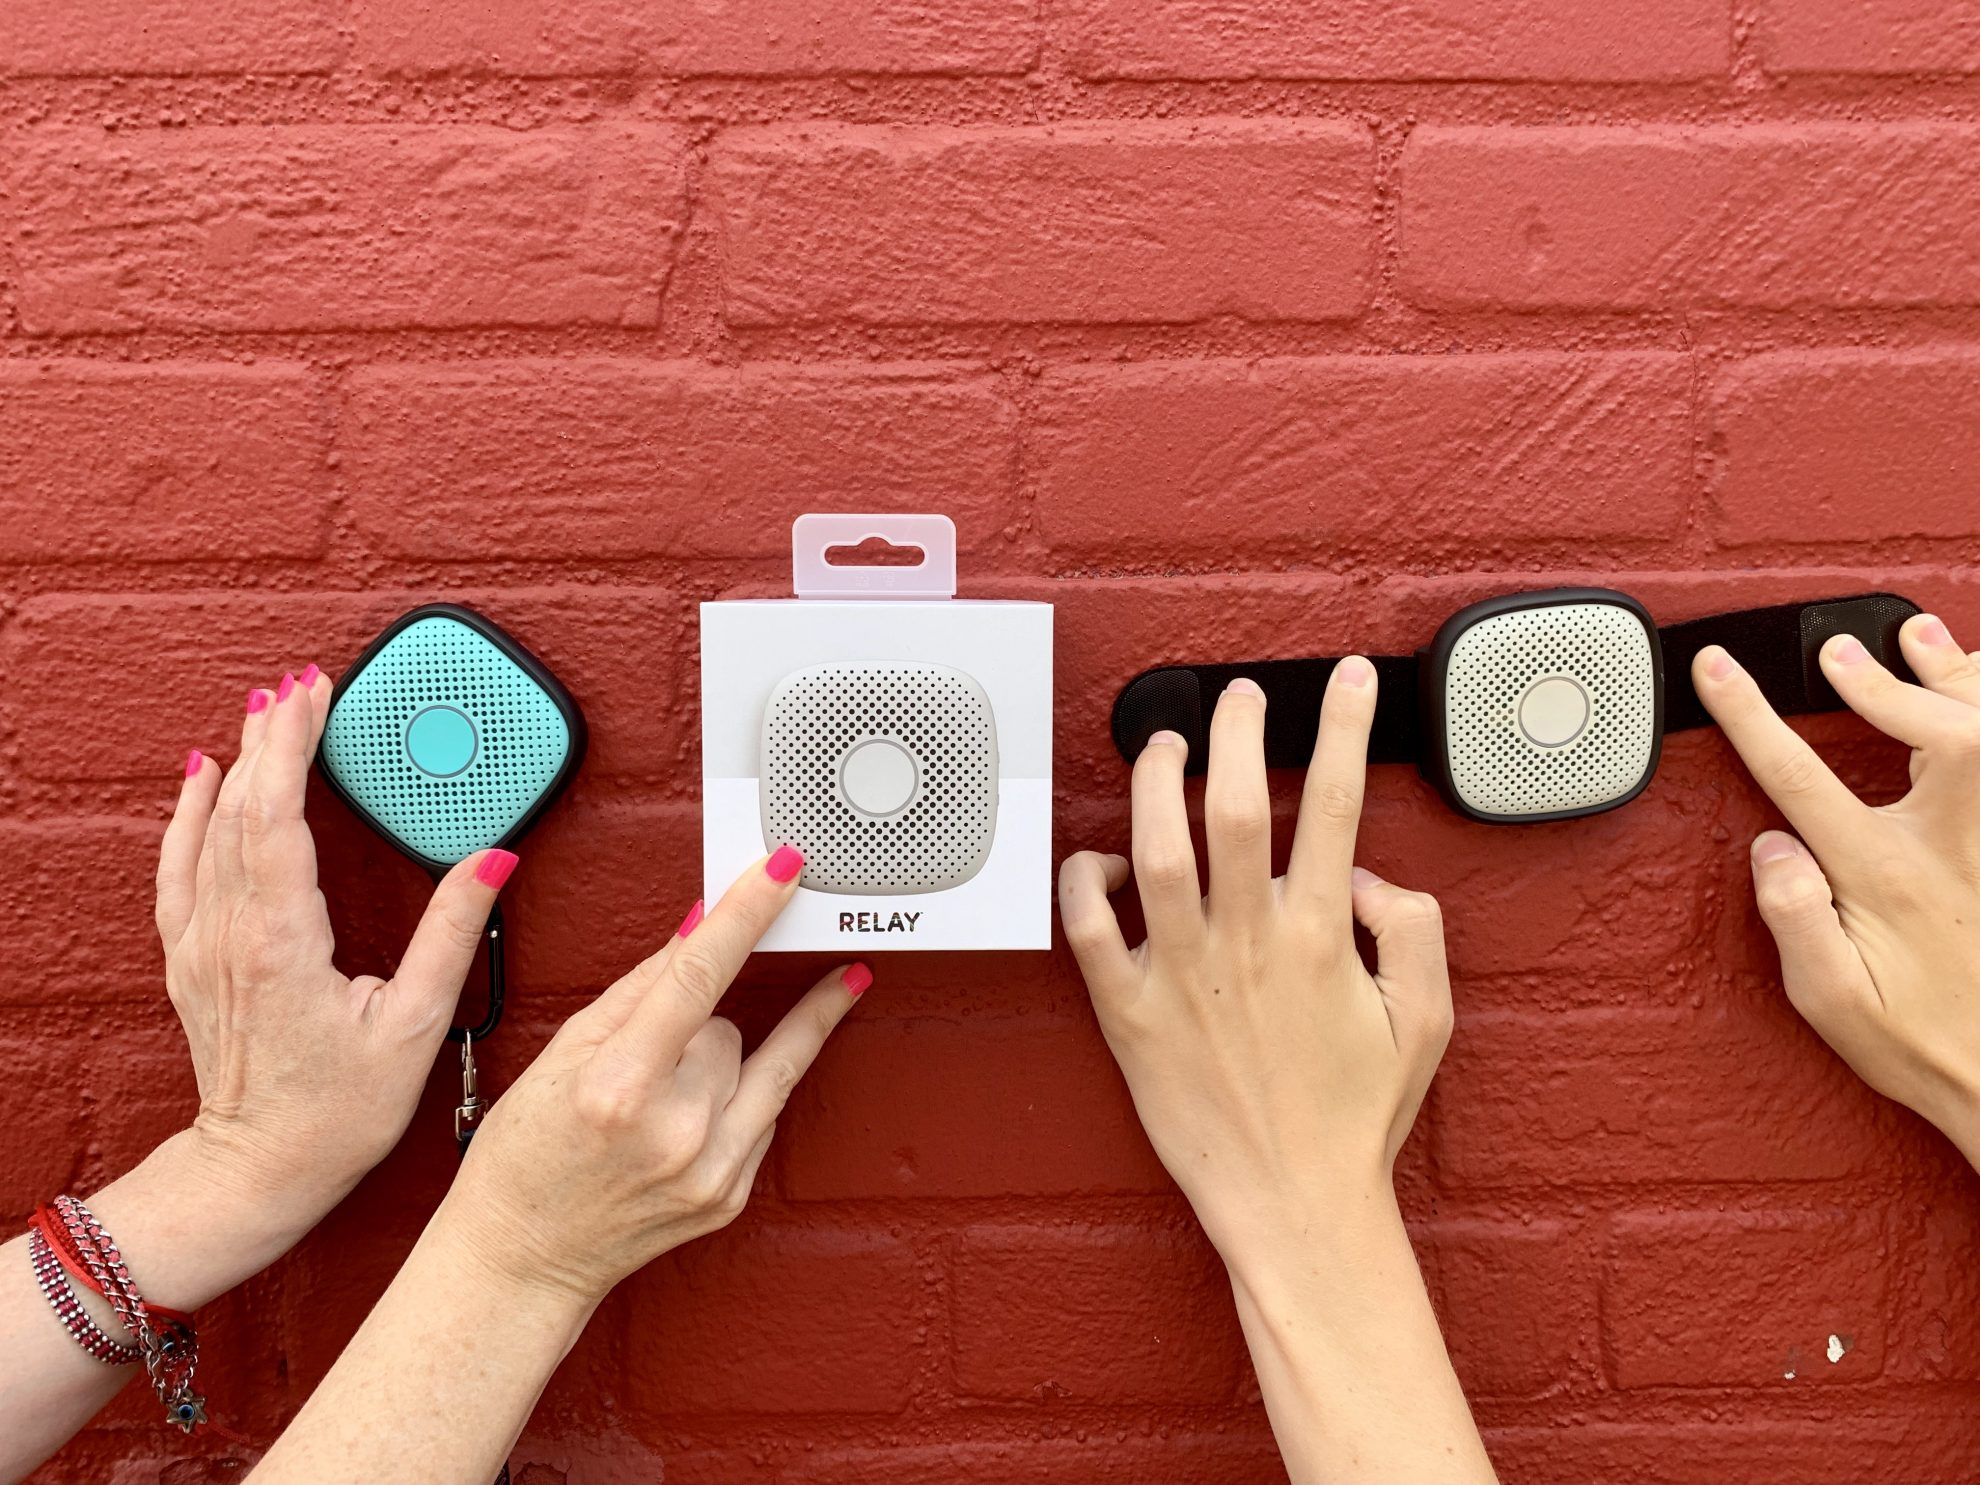 Win a Relay The Anti Smartphone for kids